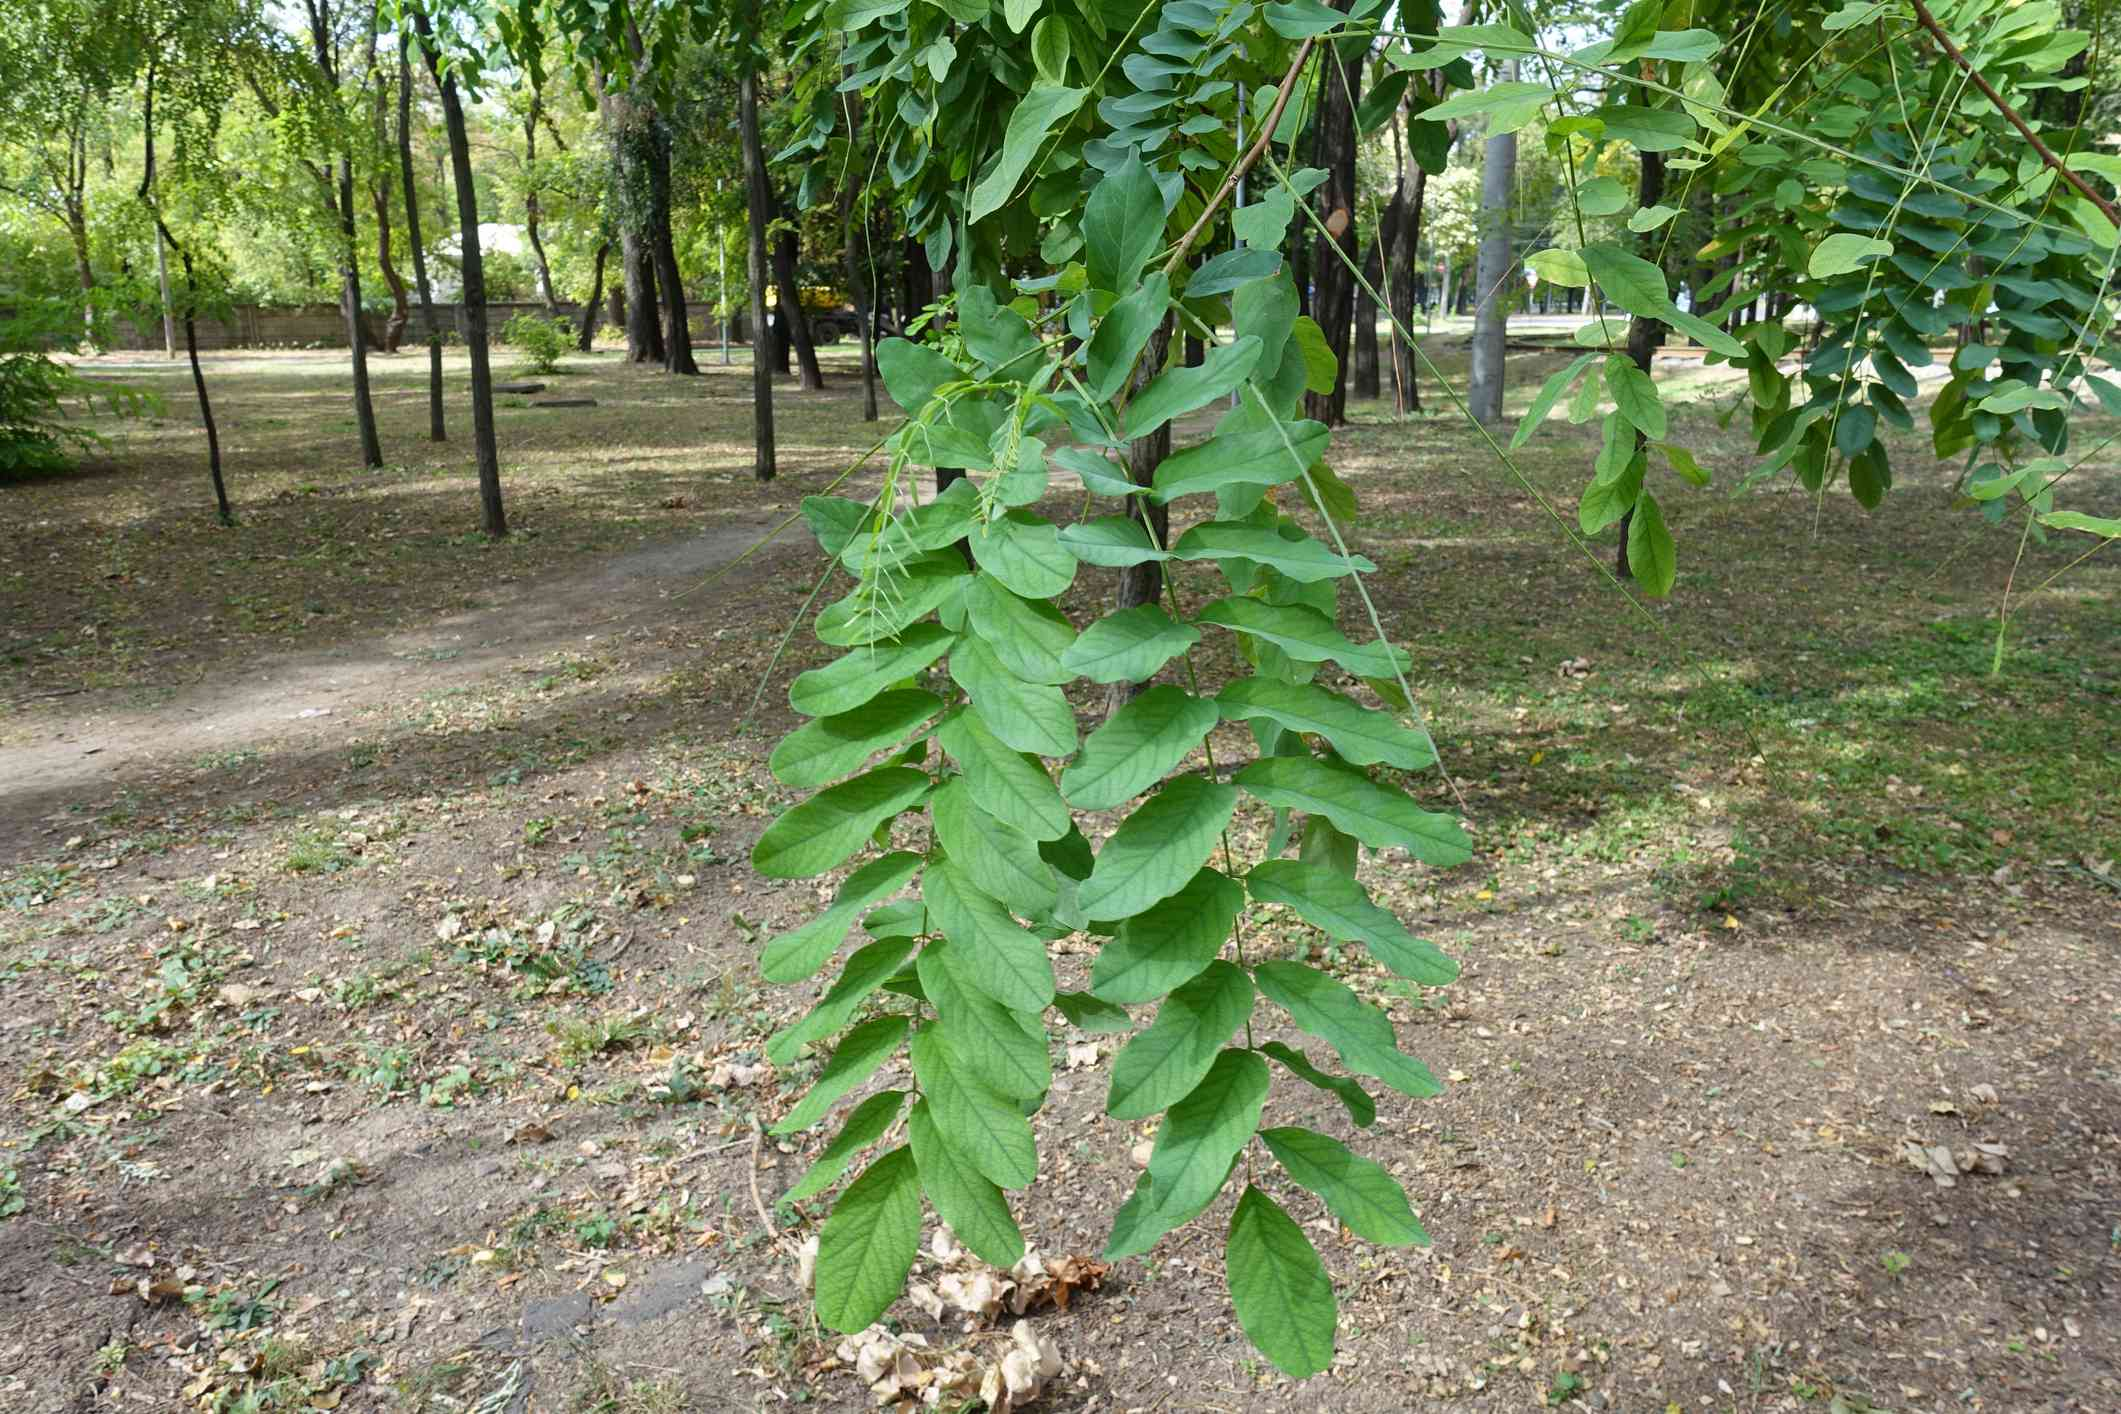 Leaves resembling a feather on a black locust tree.